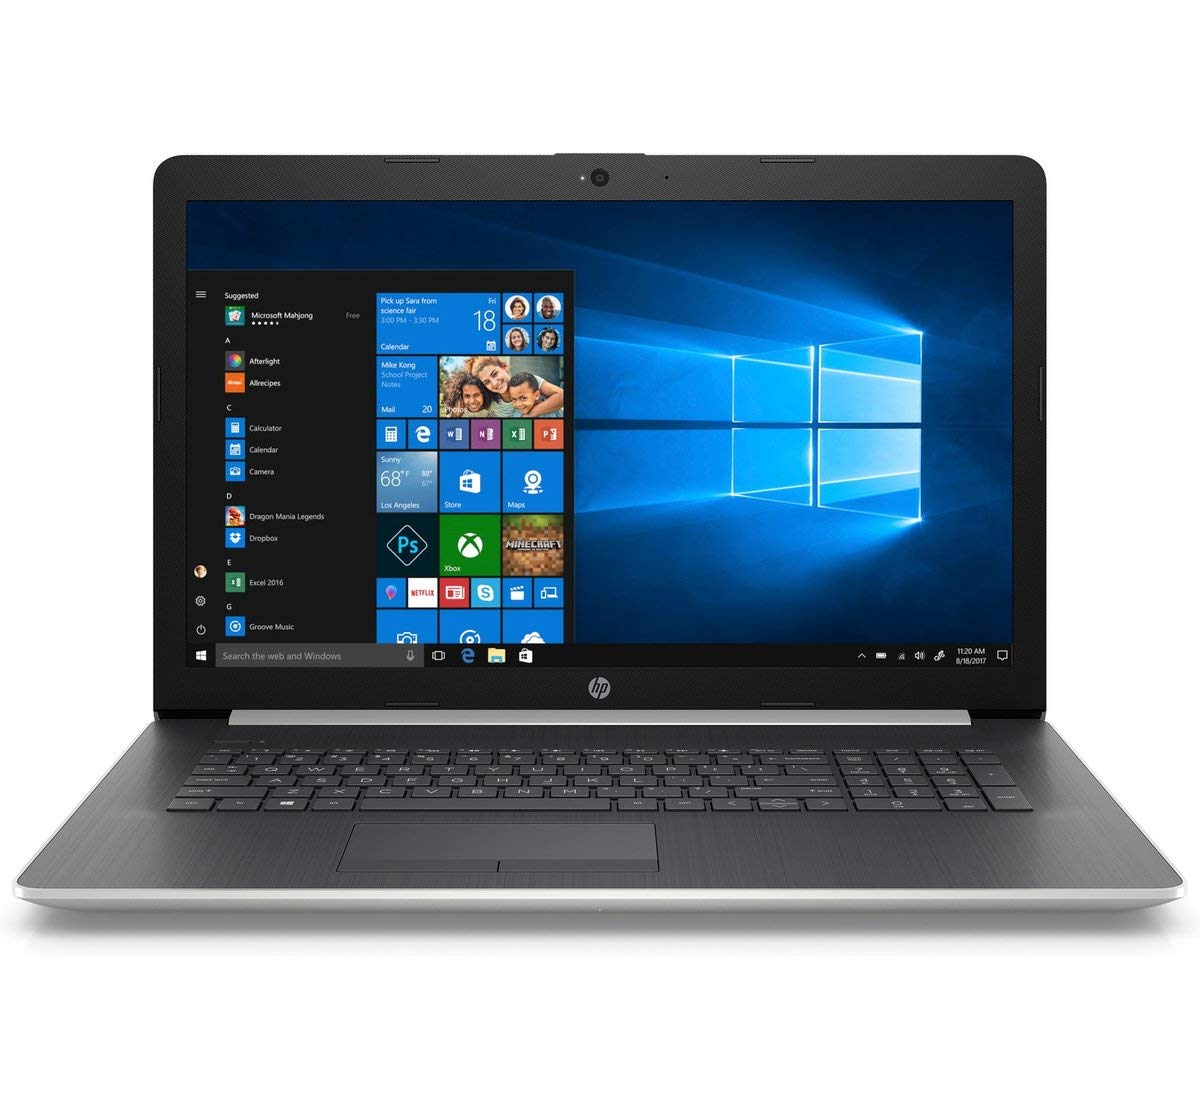 2019 HP 17.3″ HD+ Premium Laptop Computer, 8th Gen Intel Core i3-8130U(Beat I5-7200U) up to 3.40GHz, 8GB DDR4 RAM, 1TB HDD, 802.11ac WiFi, Bluetooth 4.2, USB 3.1, HDMI, DVDRW, Windows 10 Home